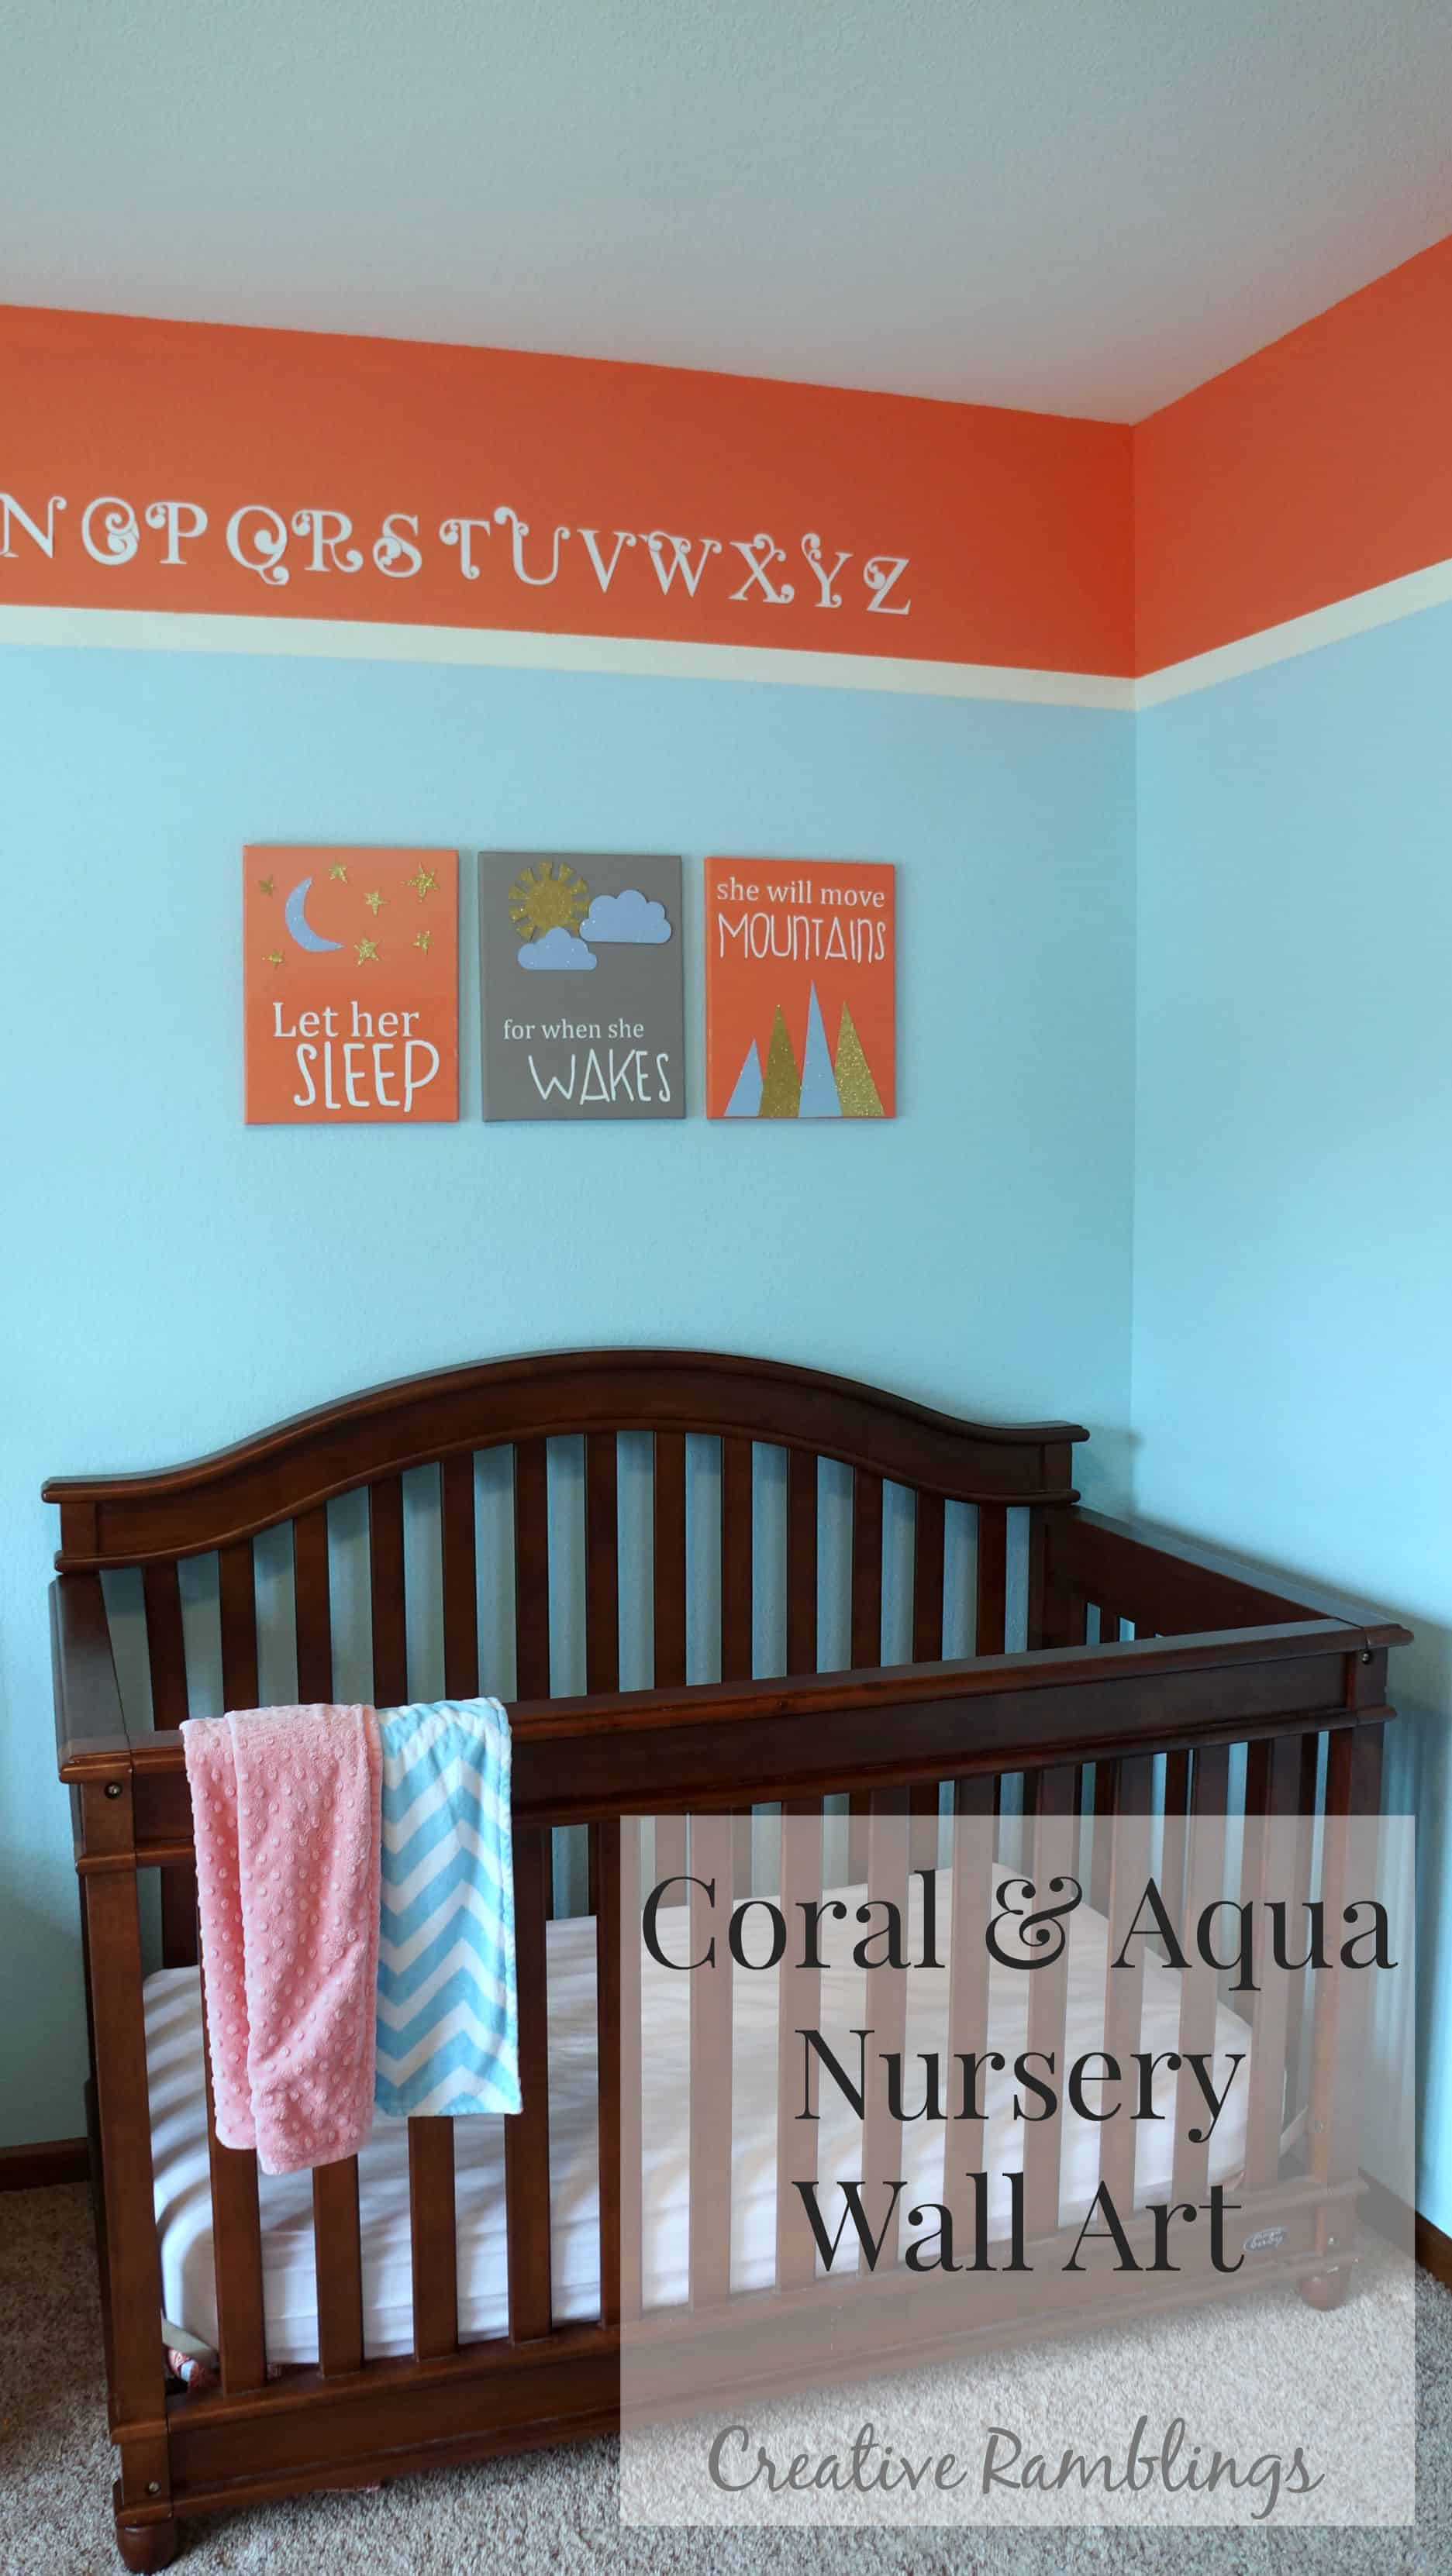 Coral and aqua nursery canvas wall art.  Let her sleep for when she wakes she will move mountains.  #Silhouetechallenge